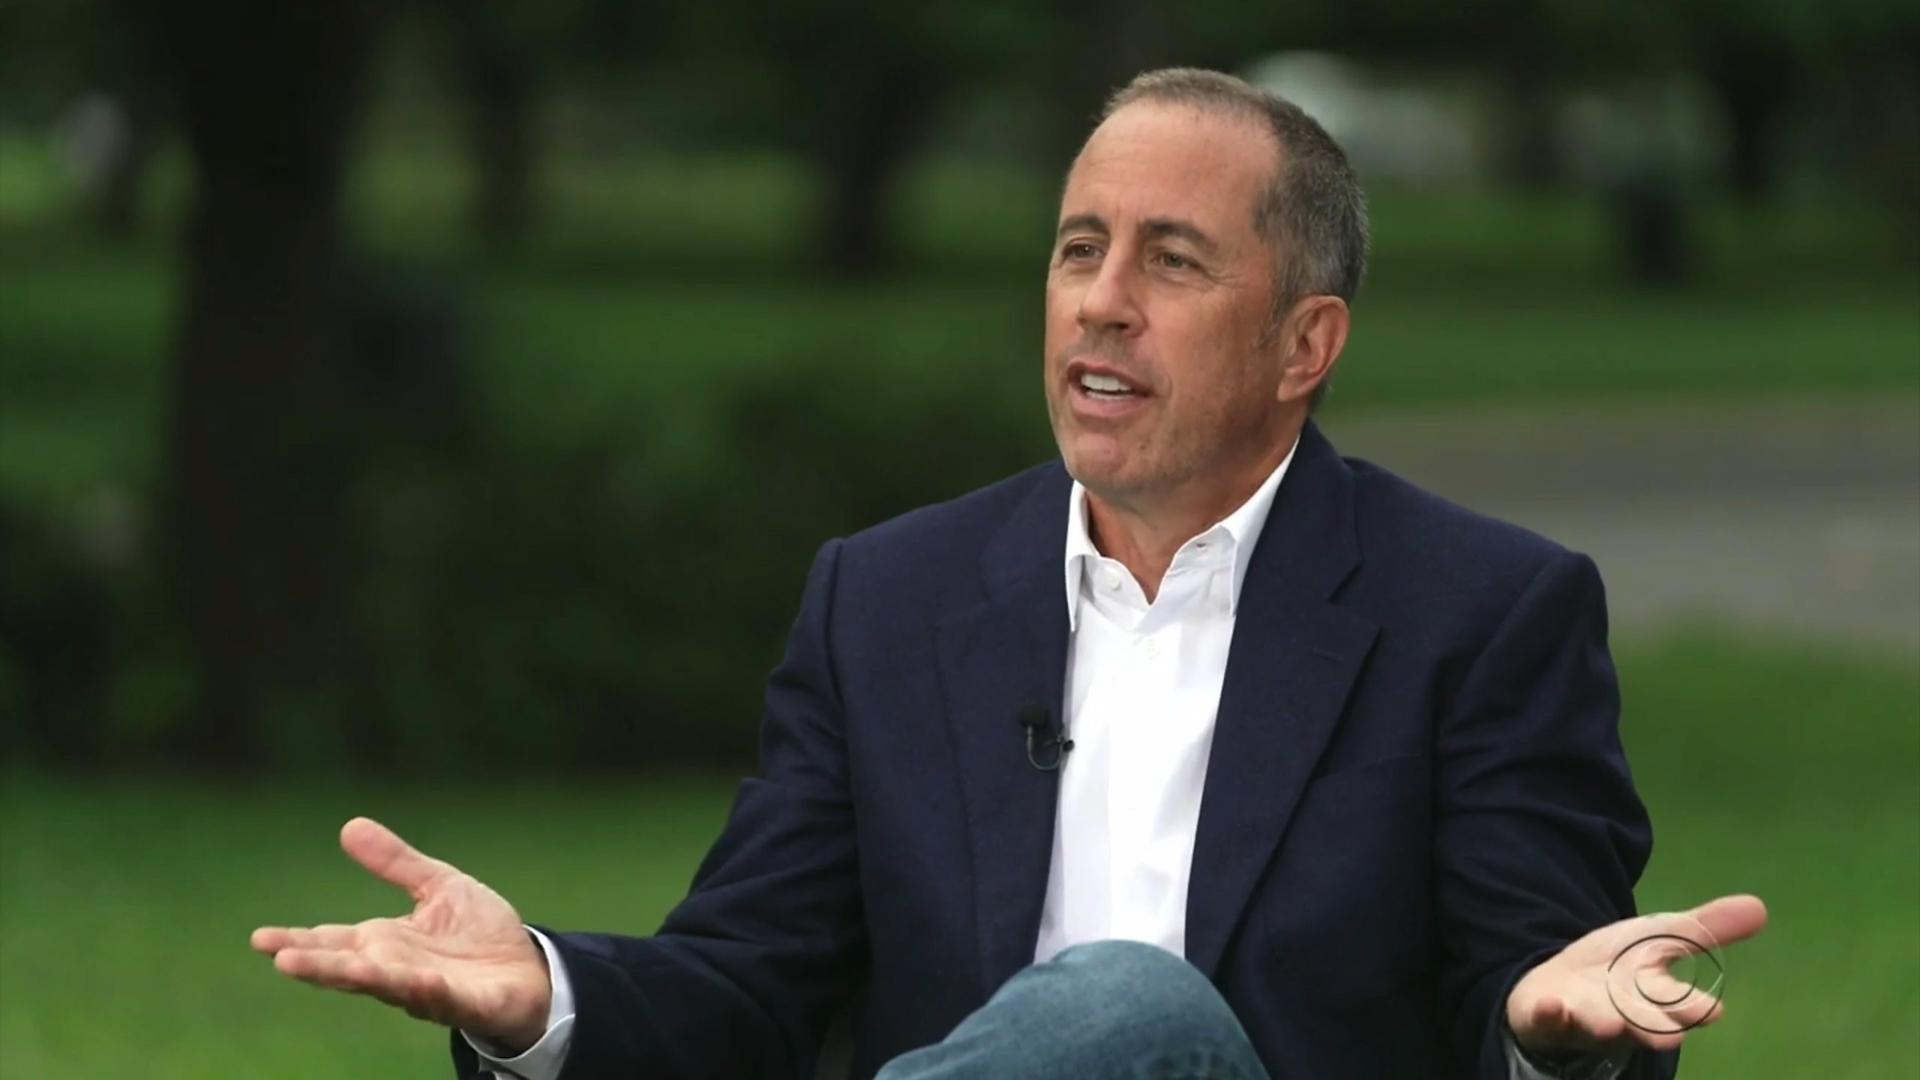 Jerry Seinfeld's 'anthill' analogy for New York's response to COVID is perfect: 'Let's get back to work'